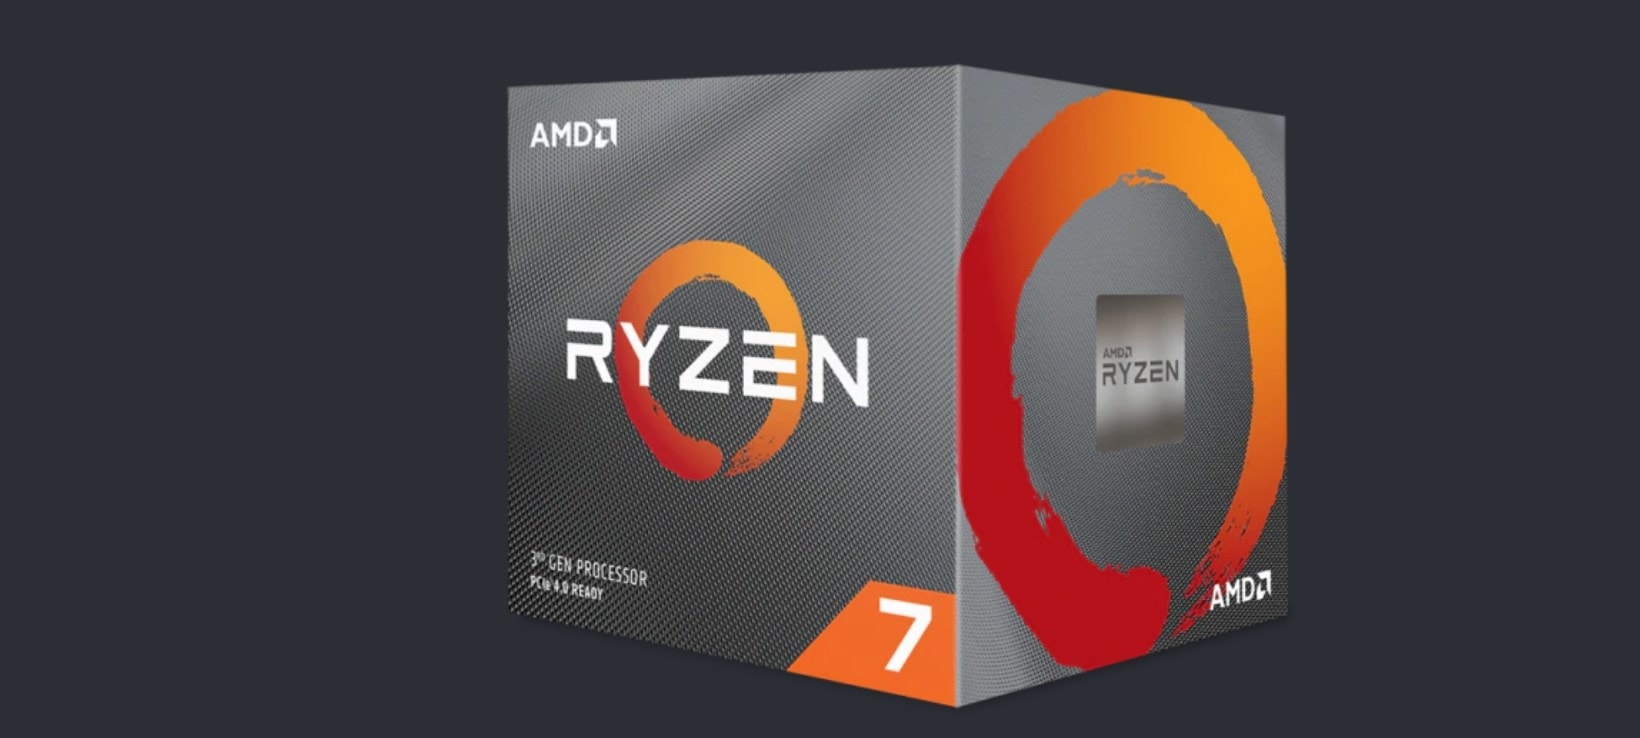 I'm building an AMD Ryzen 7 3800X Gaming PC